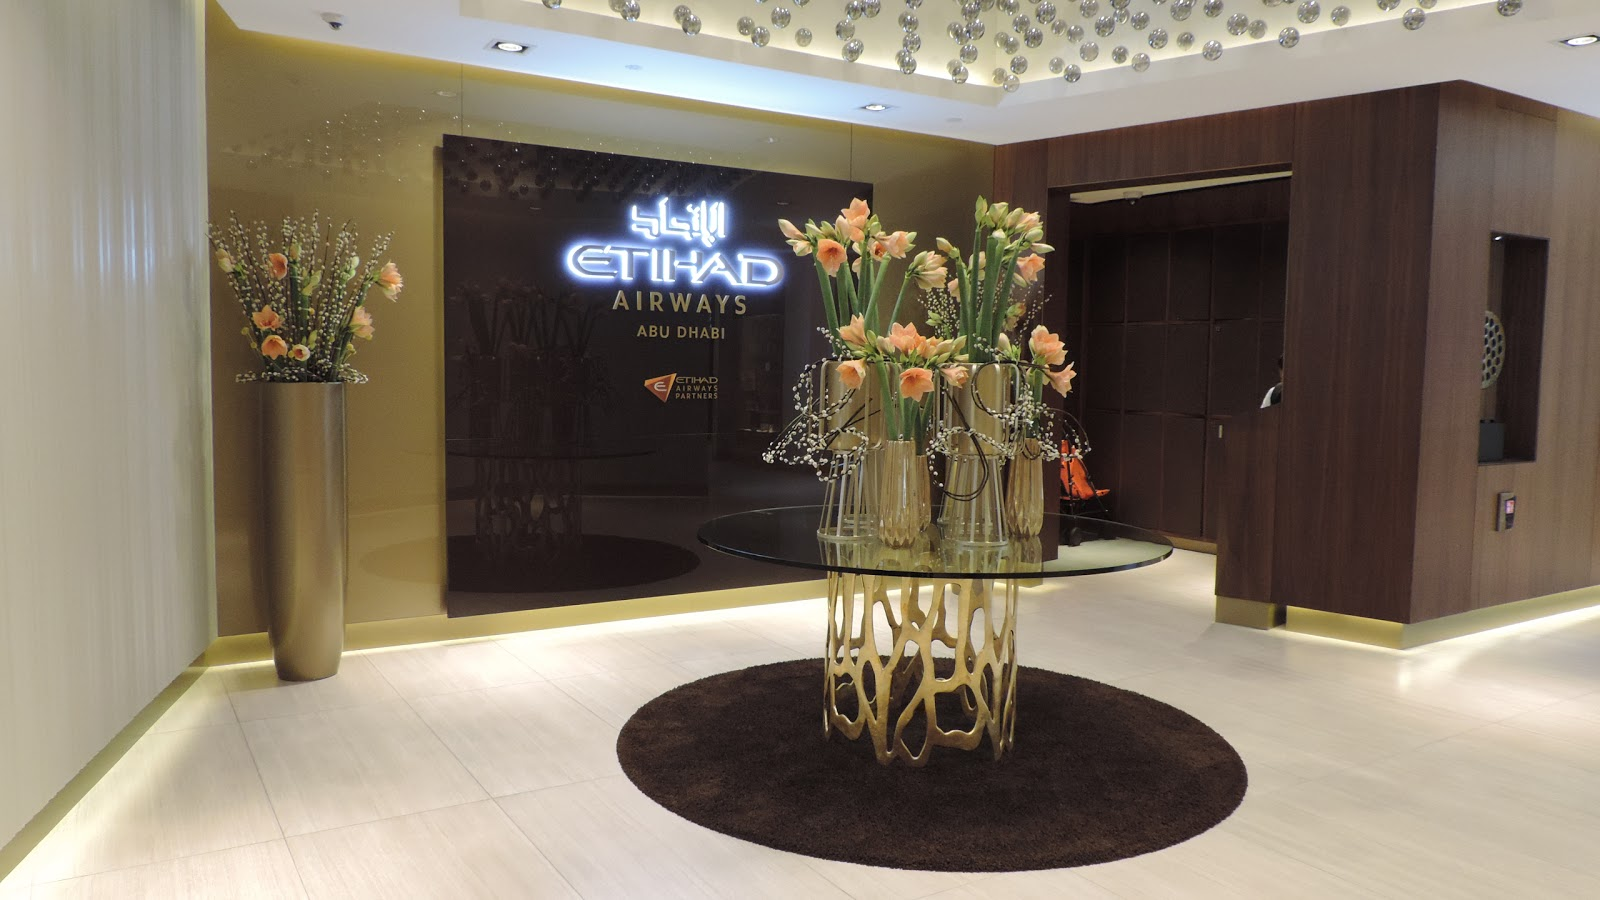 Pic etihad airways a380 first class apartment 4k may 2015 - After Visiting The Etihad Airways First Class Lounge Spa Which Is No Doubt One Of The Nicest First Class Lounges I Ve Been To I Decided To Head To The